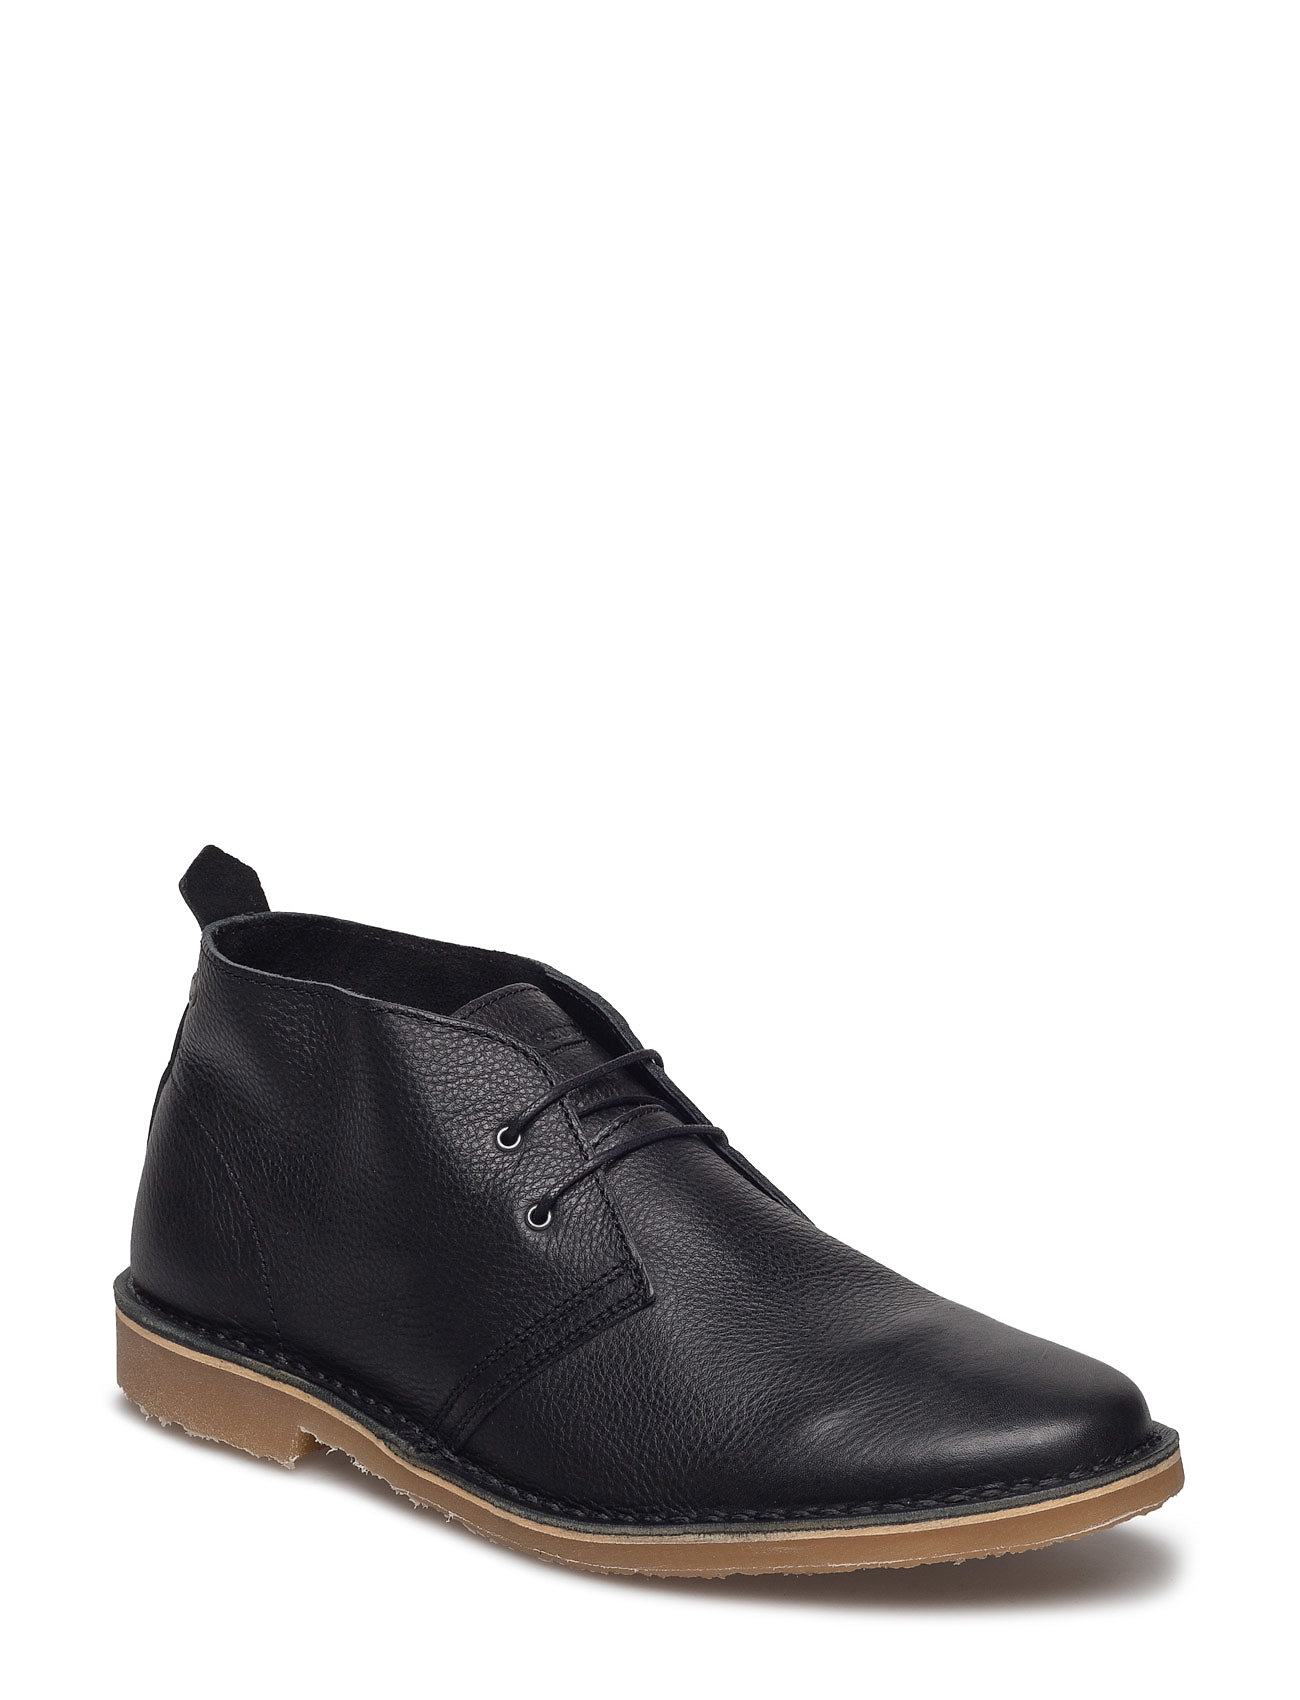 jack & jones Jfwgobi tumbled leather black fra boozt.com dk